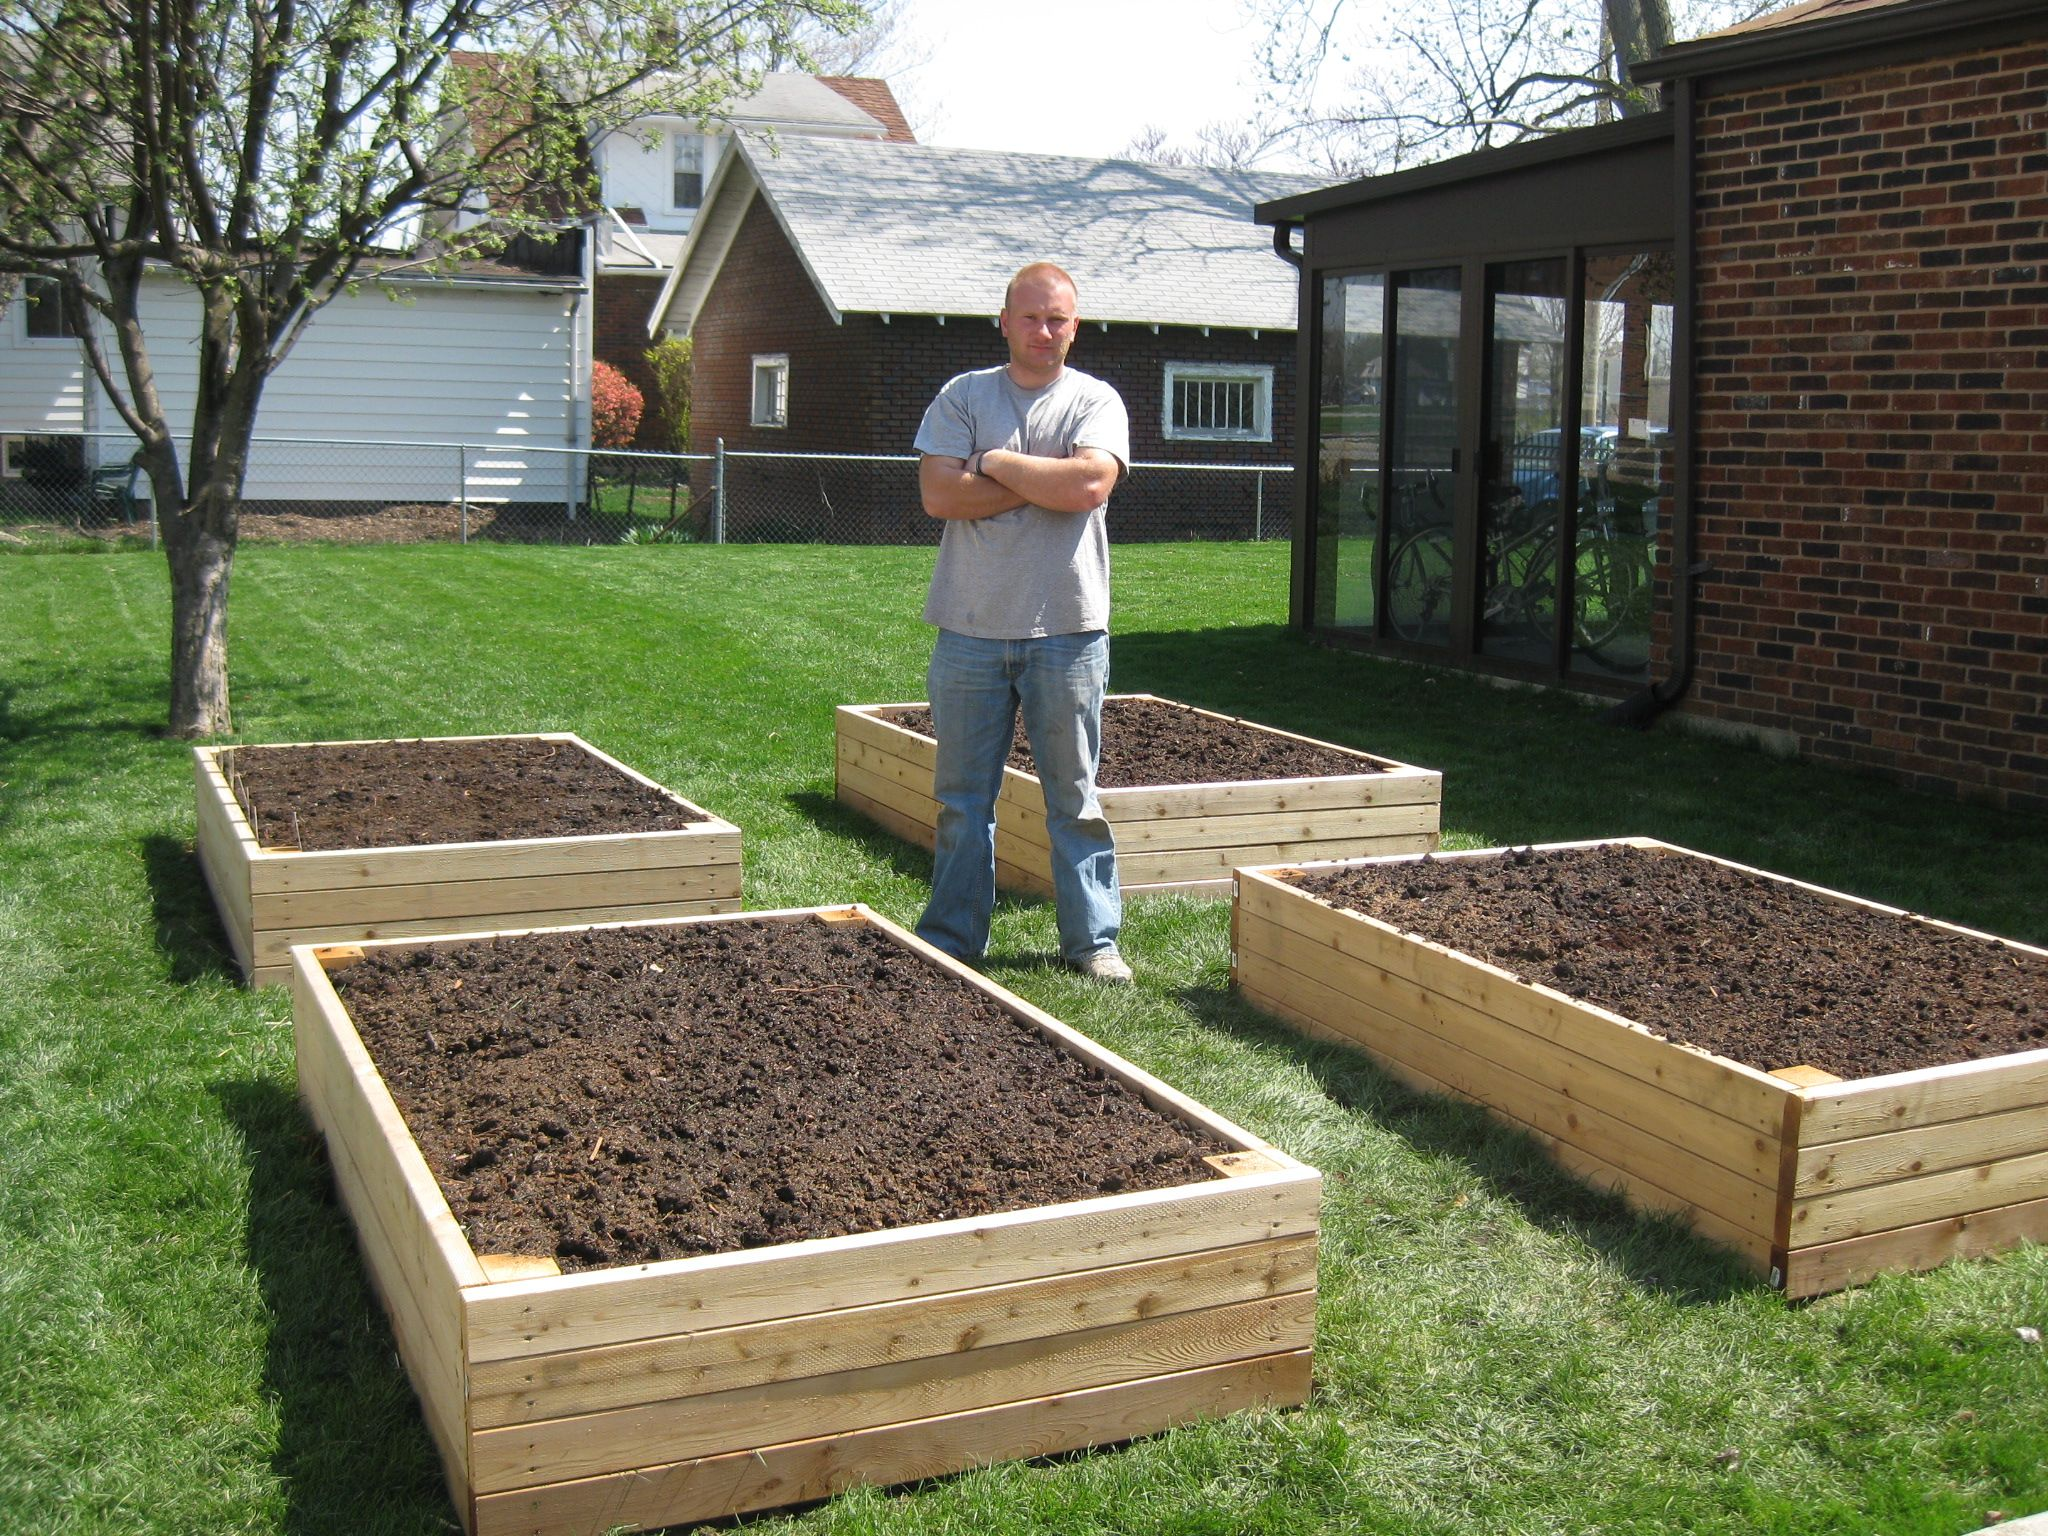 Garden Beds Ideas garden beds ideas backyard garden bed ideas Bp Builds Four Raised Garden Beds